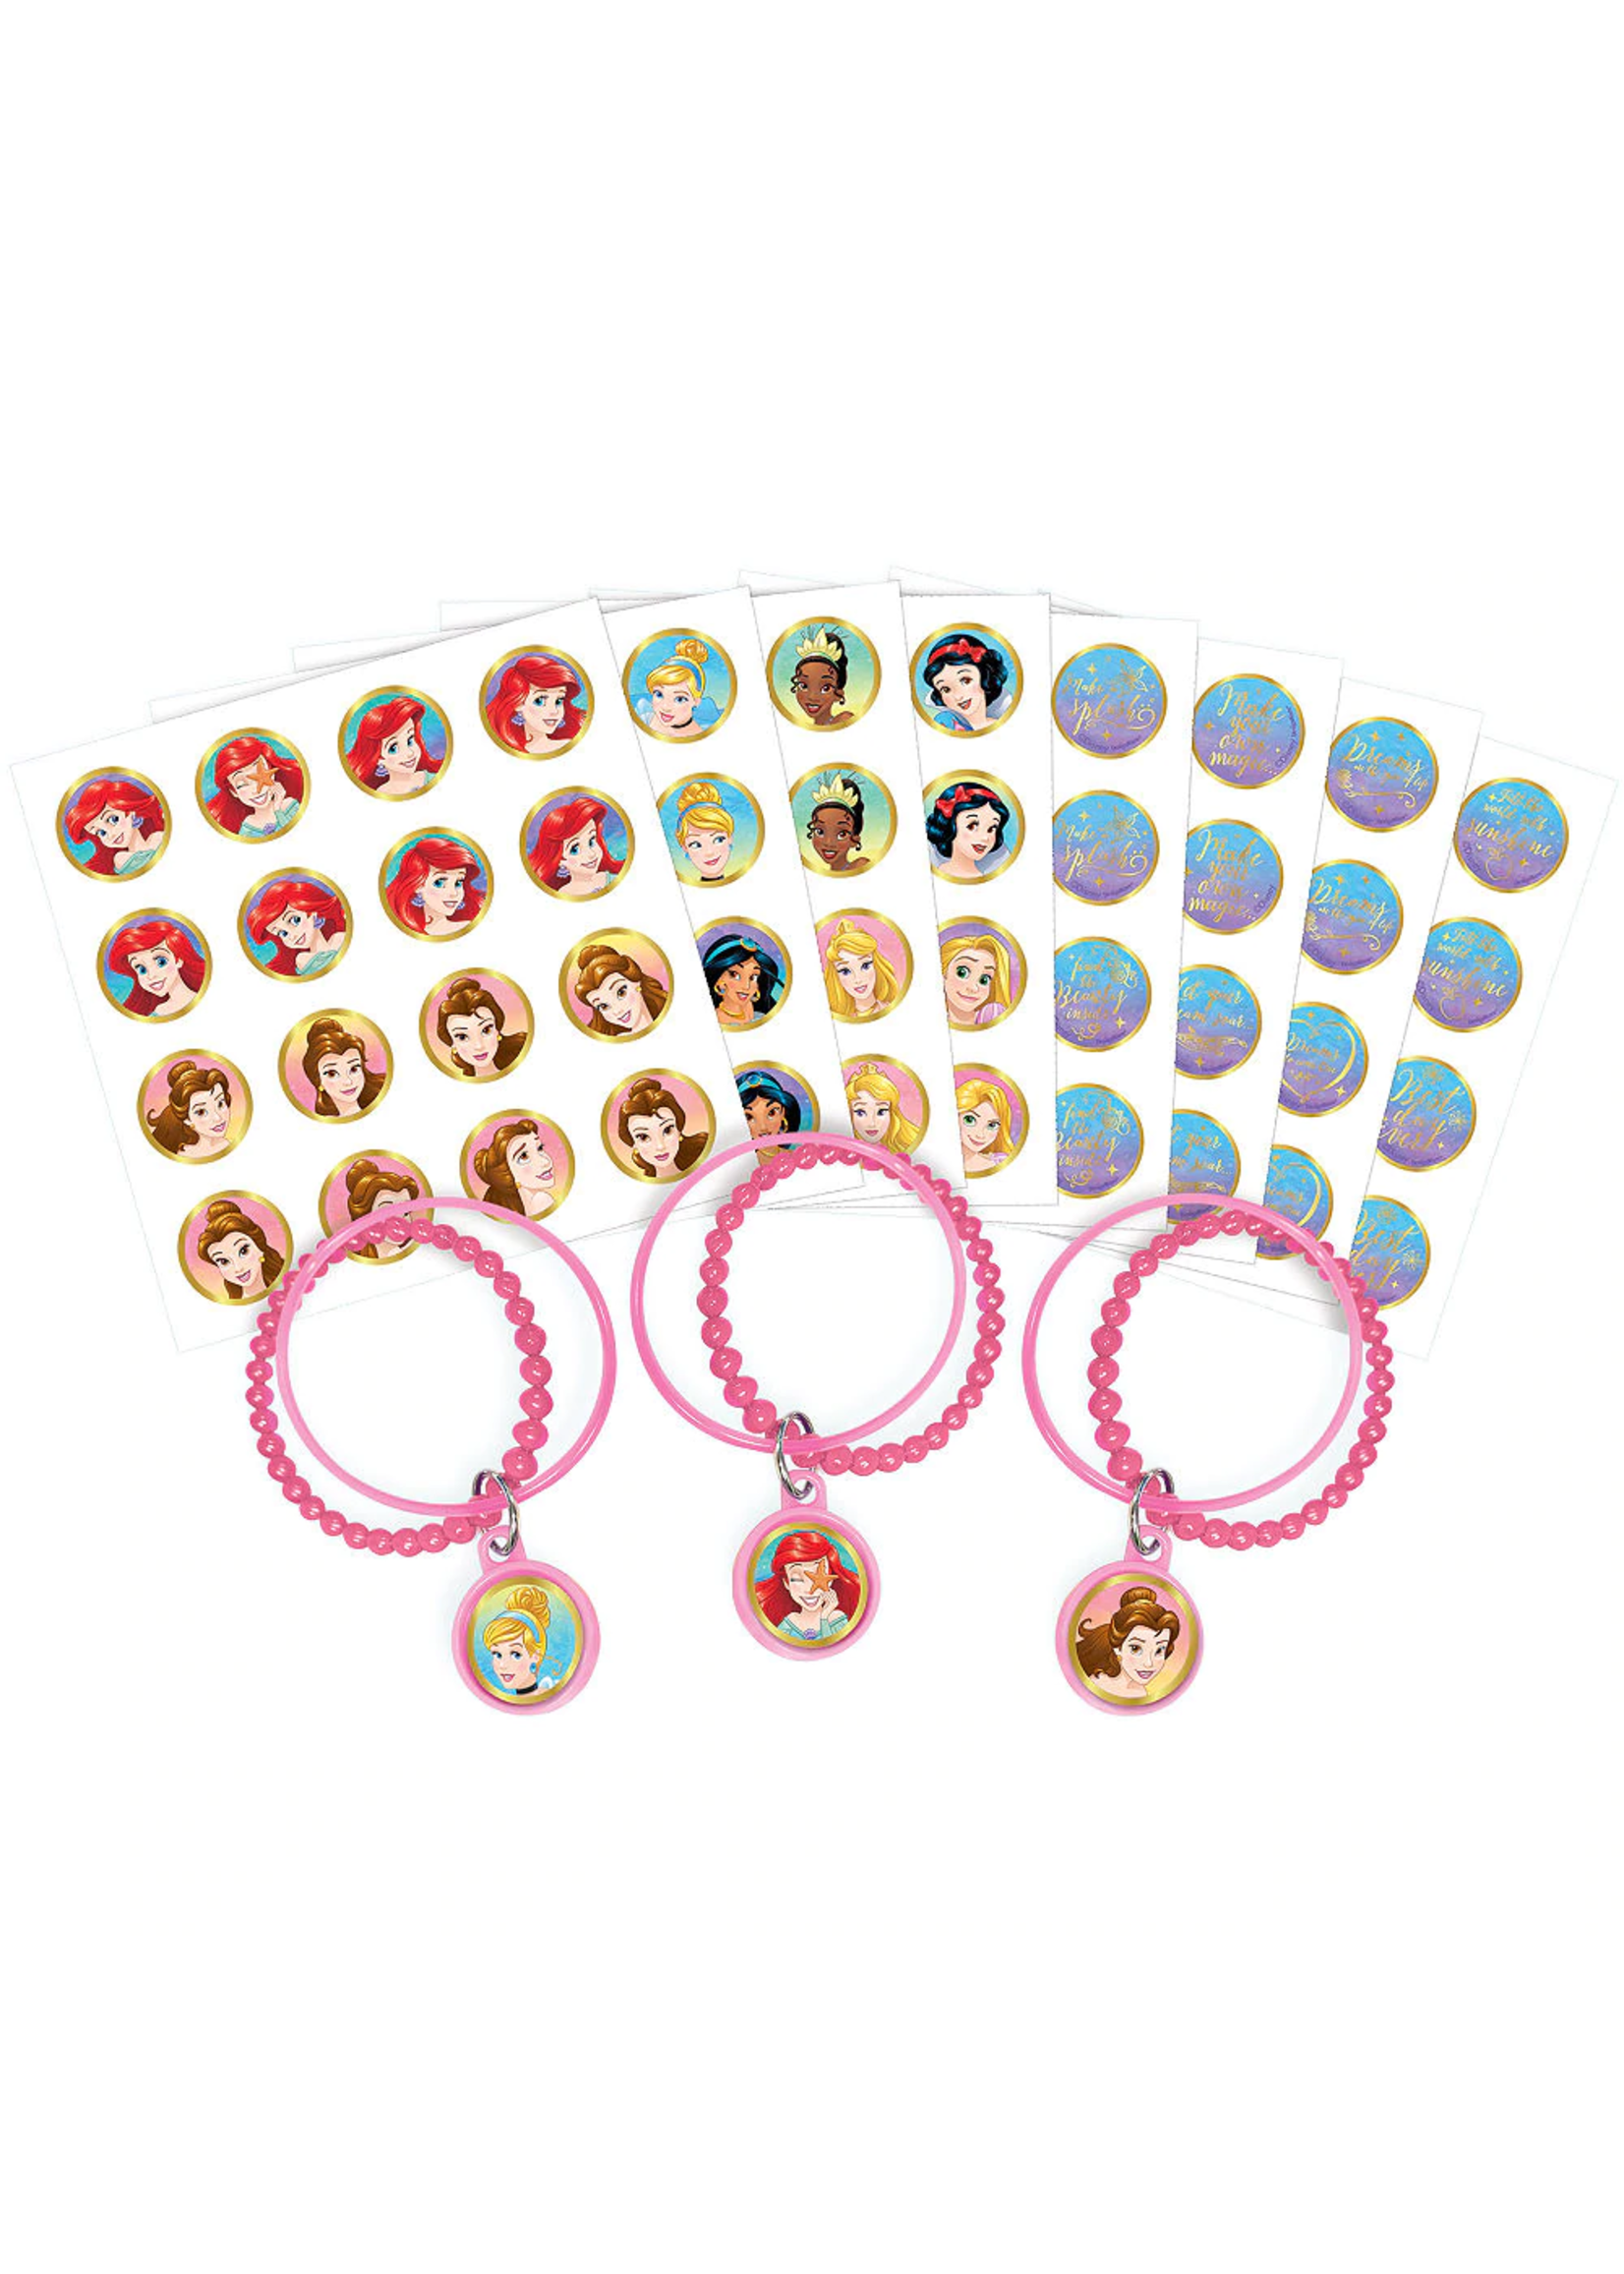 Disney Princess Once Upon a Time Bracelet Kits - 8ct